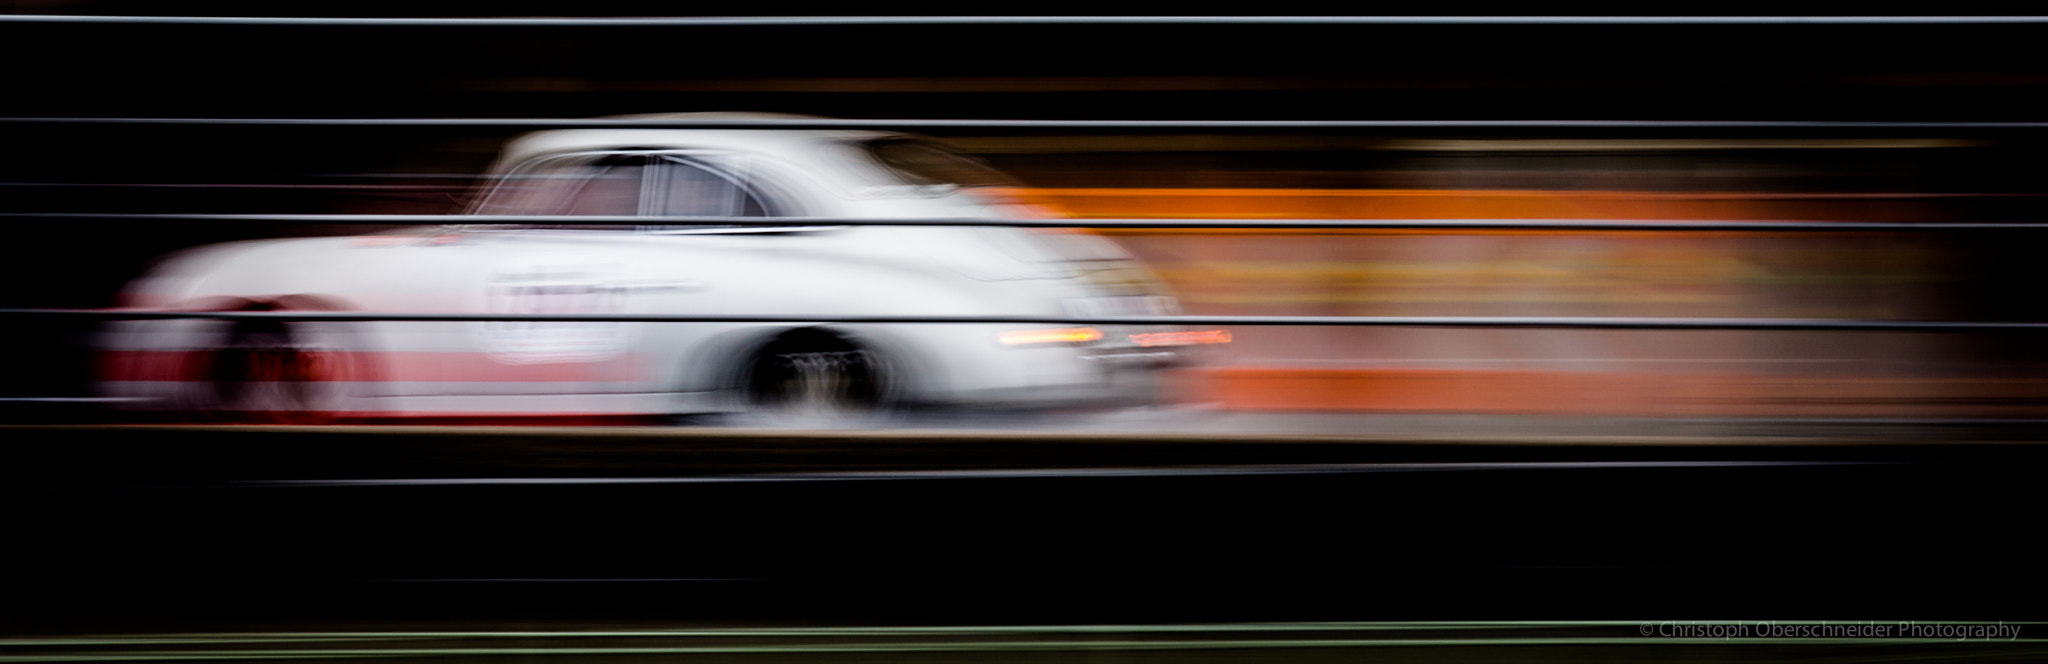 Photograph going fast. by Christoph Oberschneider on 500px